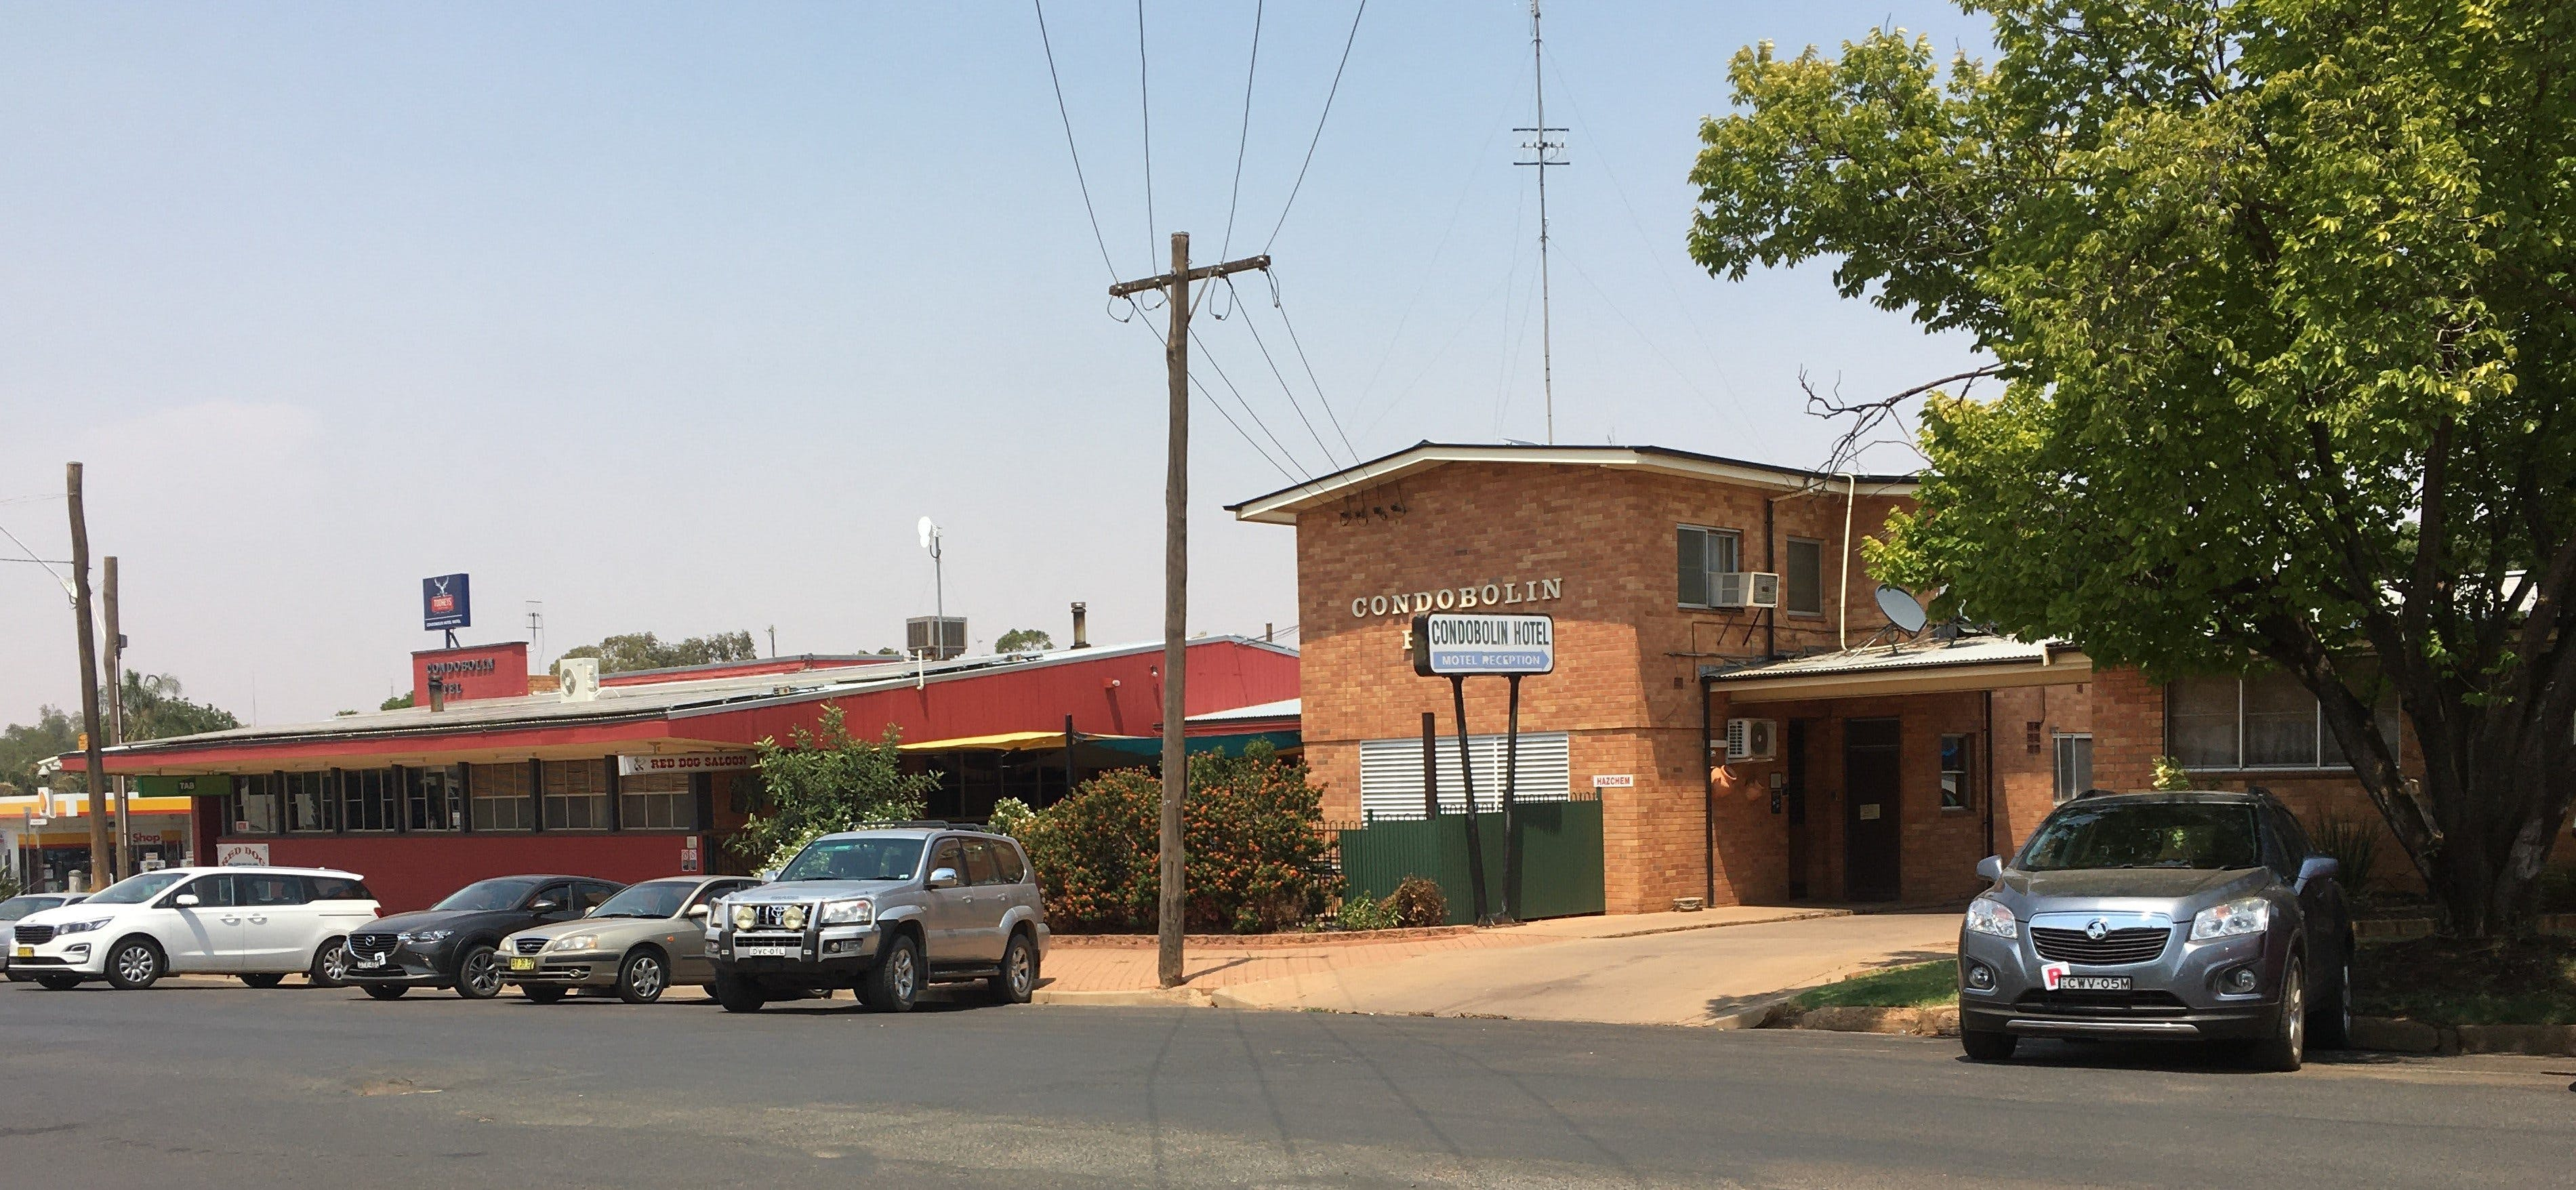 The Condobolin Hotel - Accommodation in Brisbane